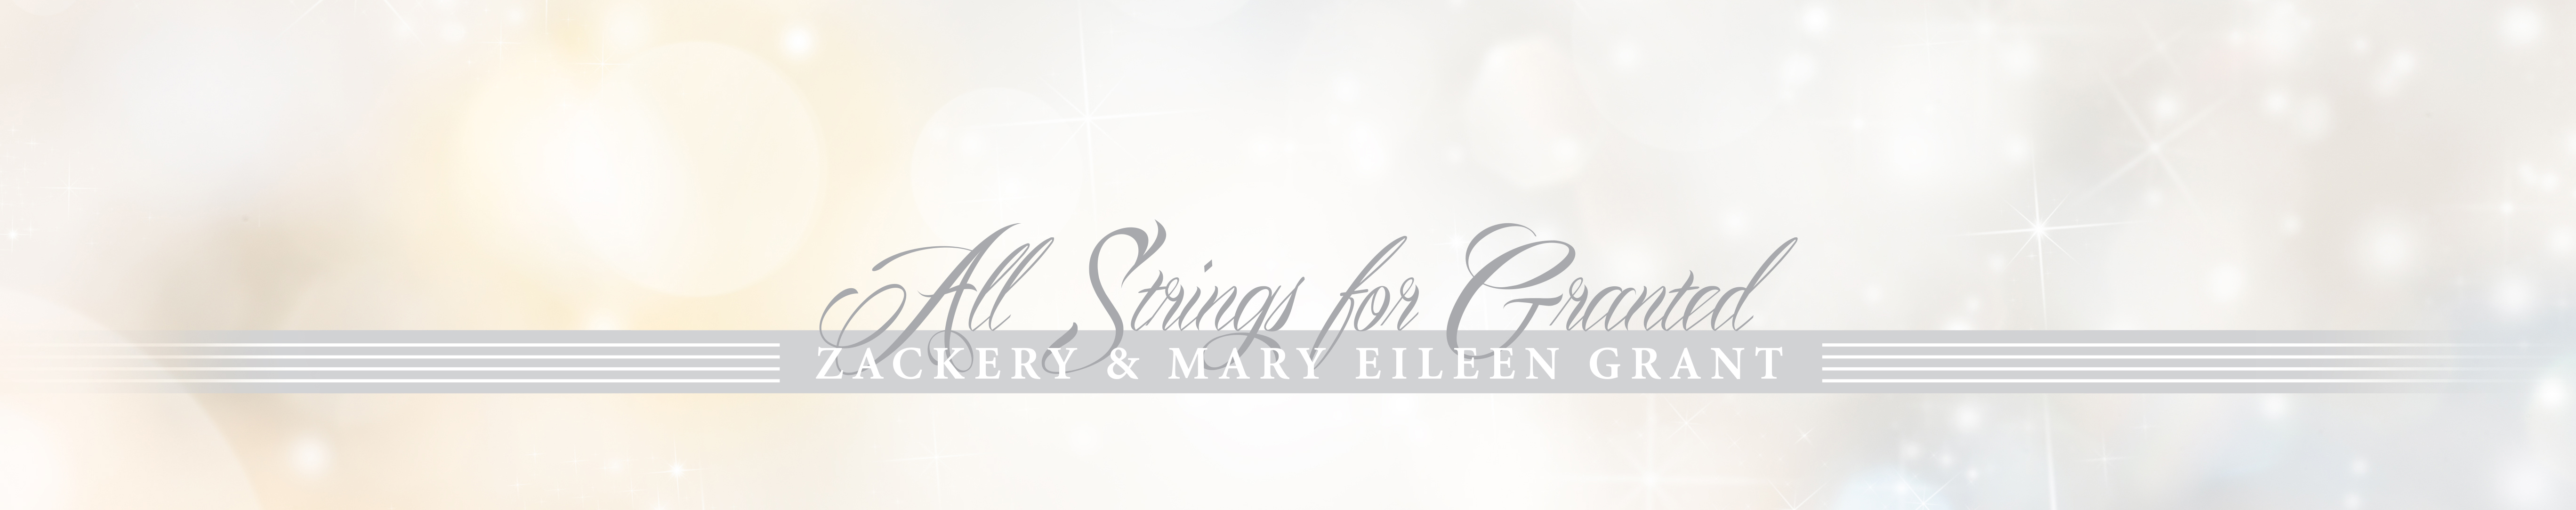 string quartet shreveport logo wedding music